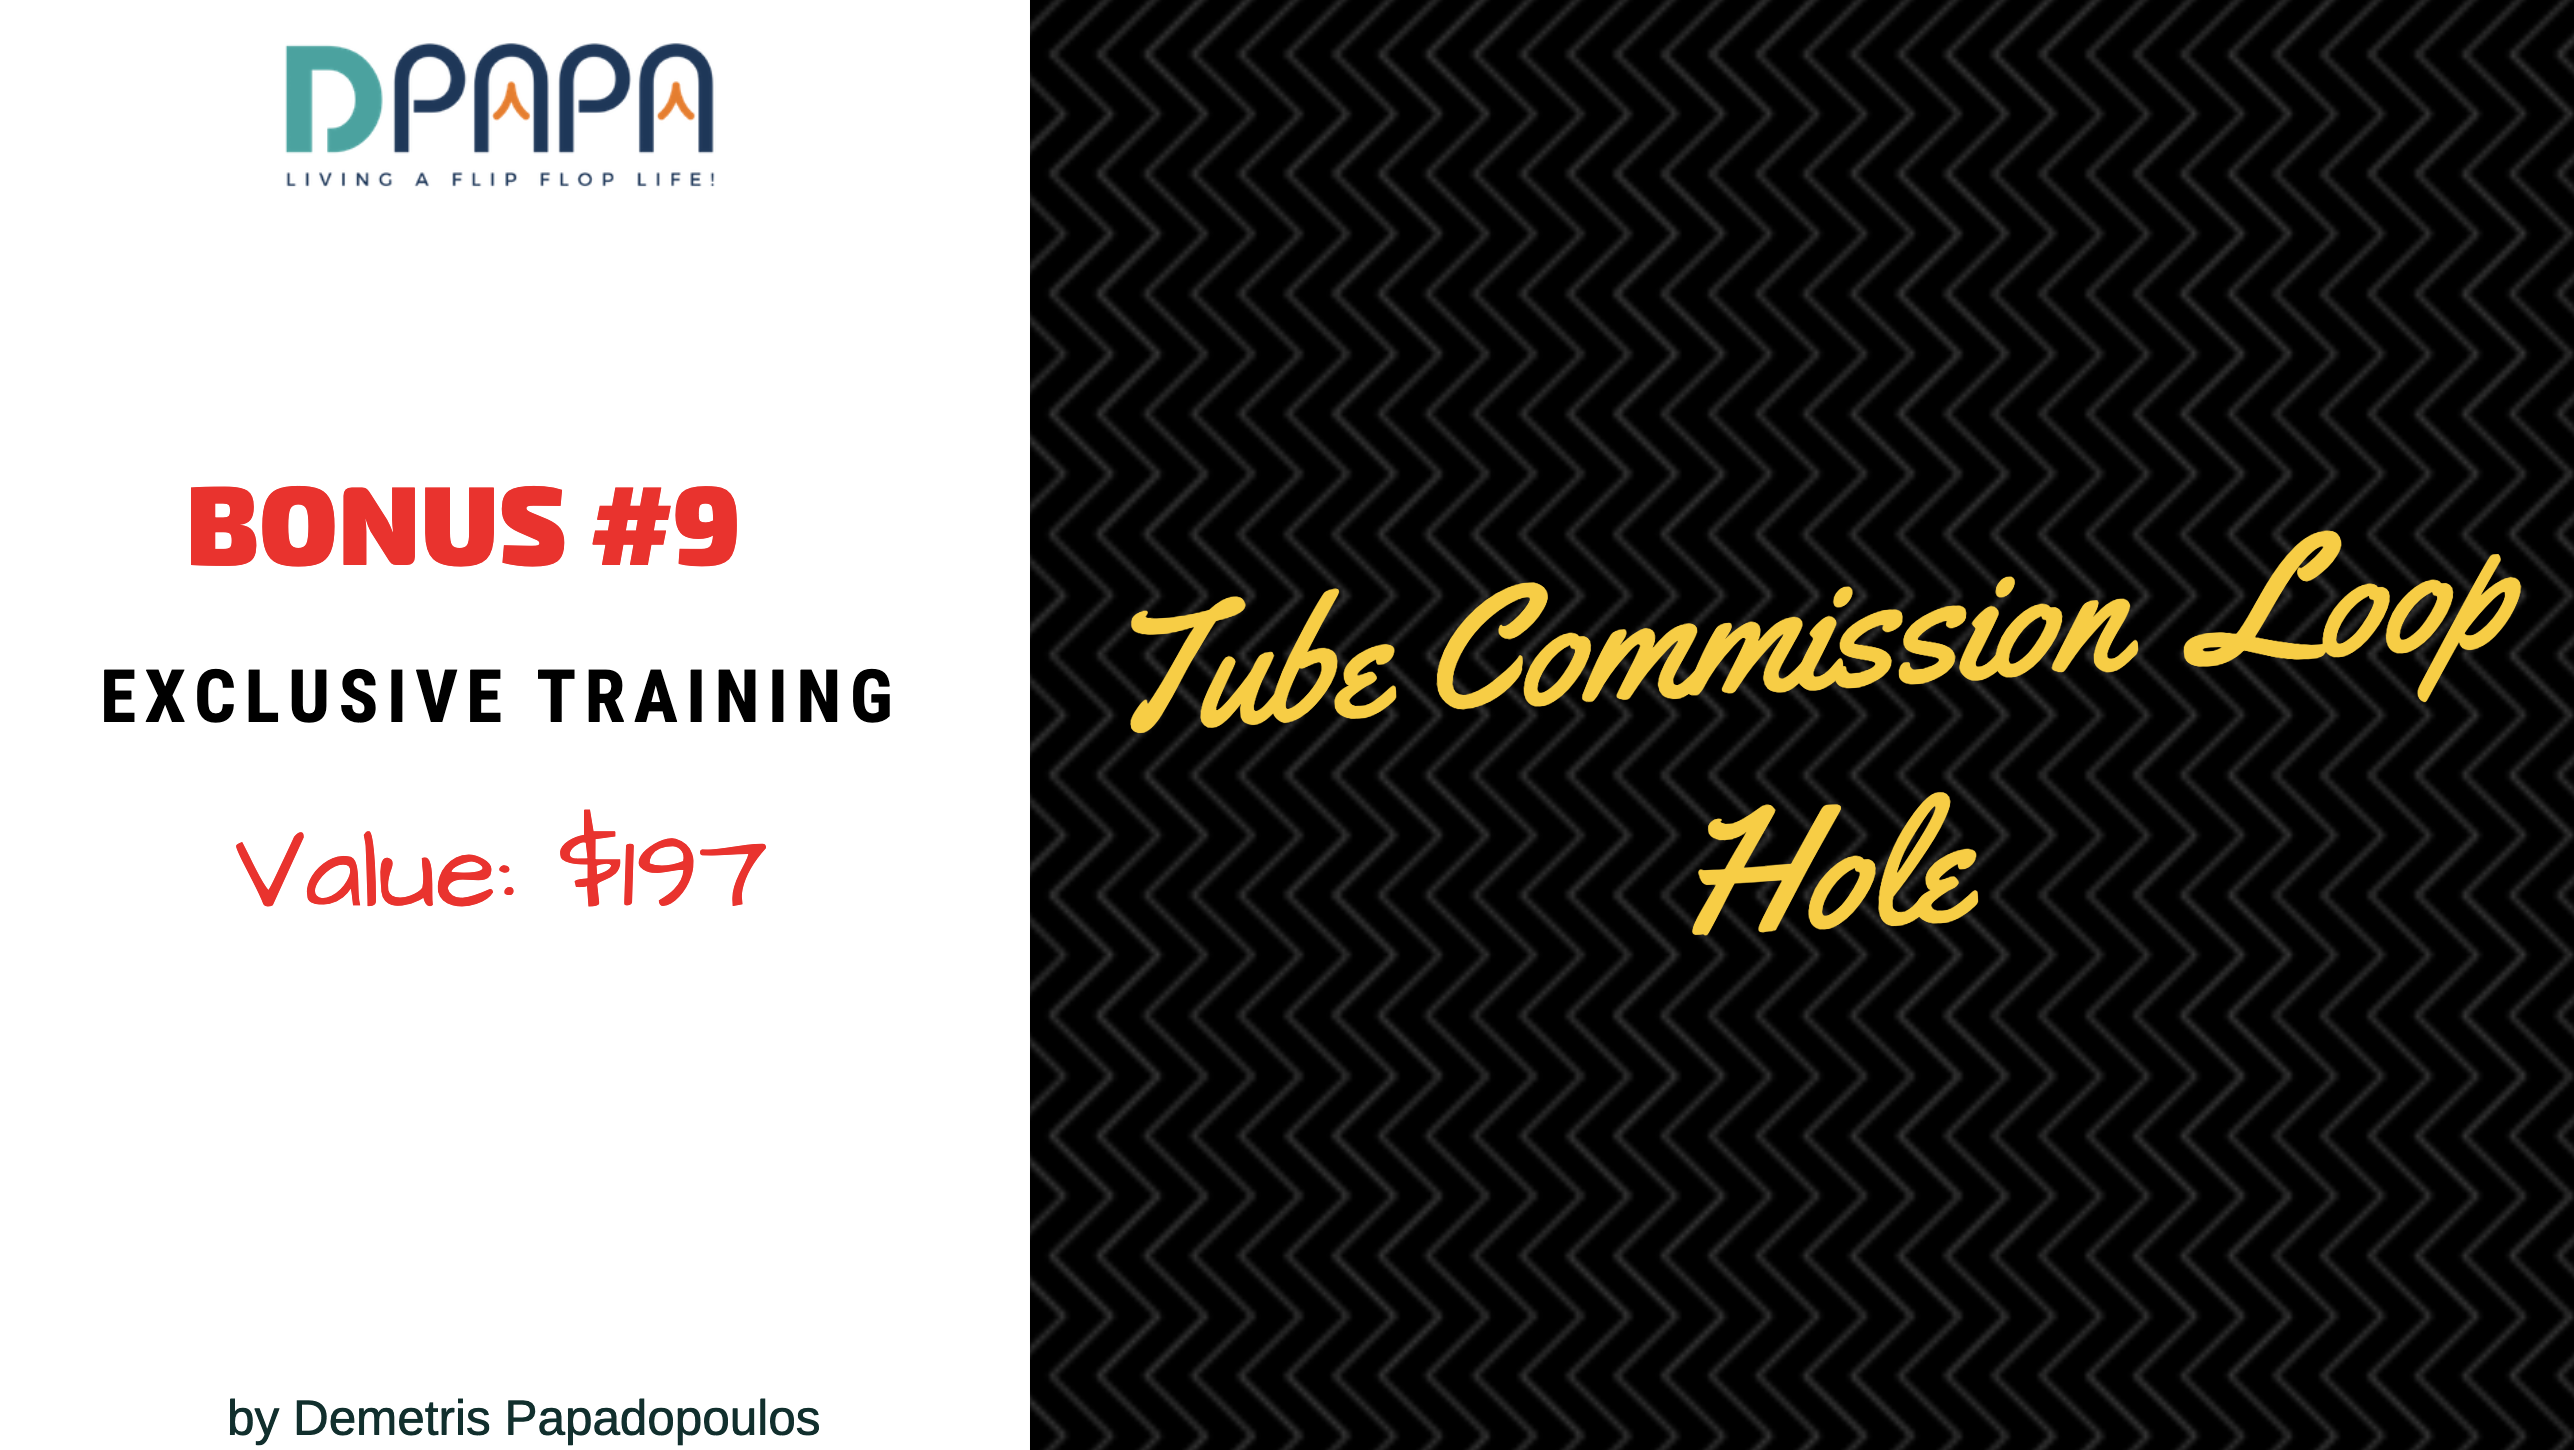 How To Combine CPA Affiliate Marketing & FB ads to Turn $5 into $163 in 30 min 15